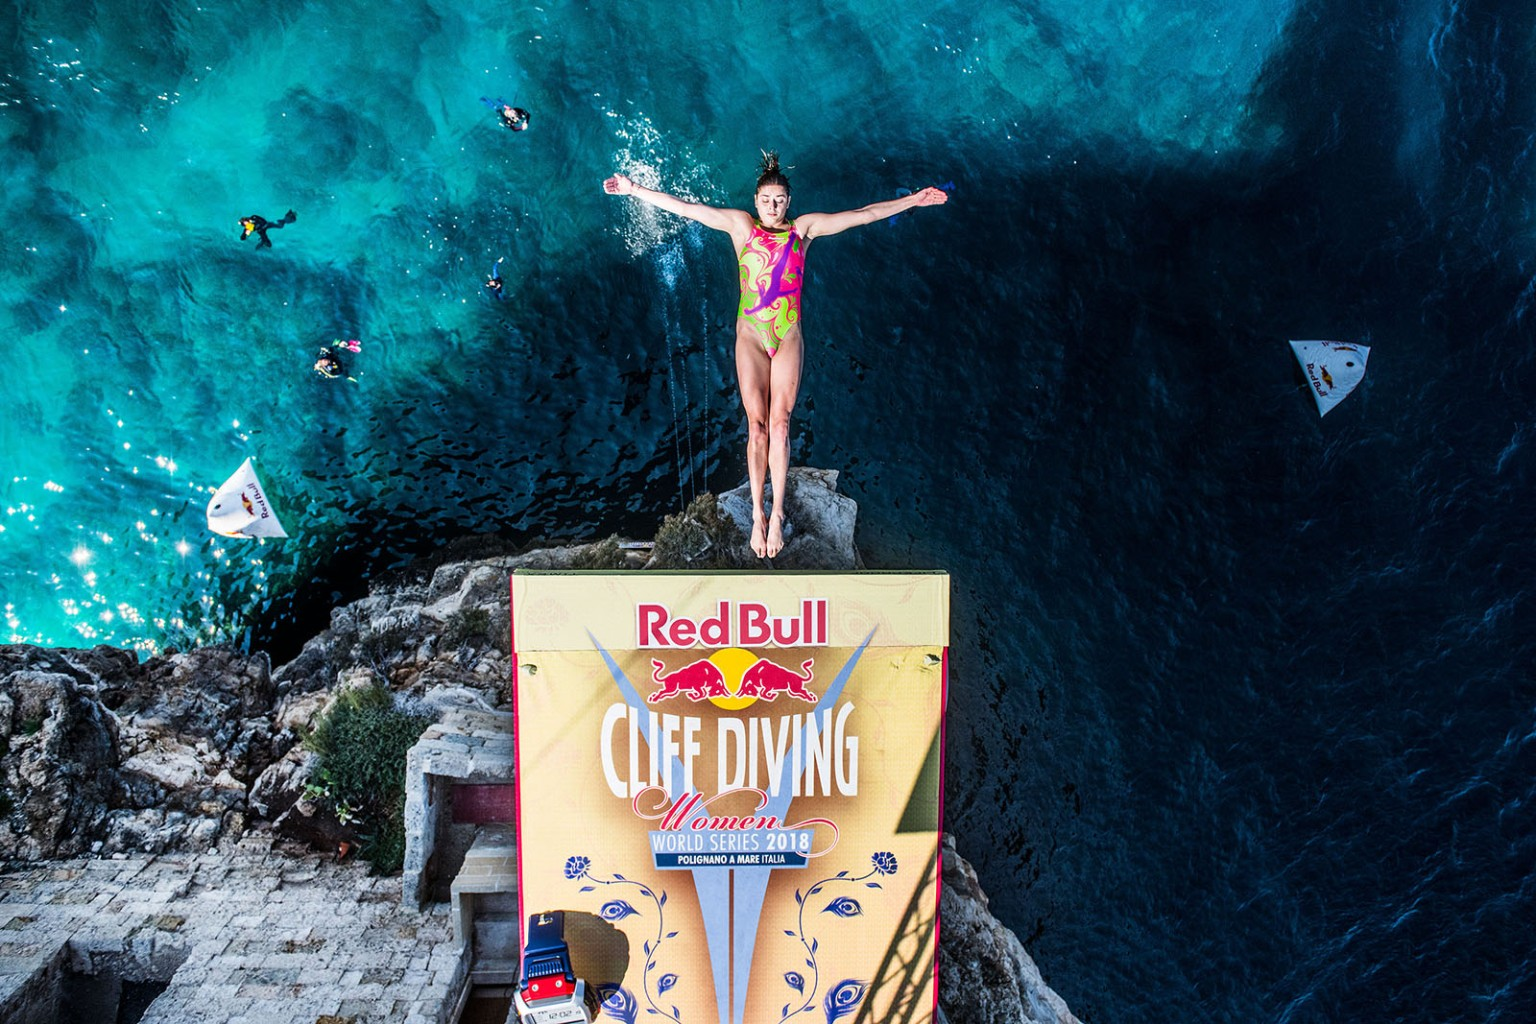 Yana Nestsiarava of Belarus dives from a platform during the first day of competition of the seventh and final stop of the Red Bull Cliff Diving World Series at Polignano a Mare, Italy, on Sept. 22. Romina Amato/Red Bull via Getty Images